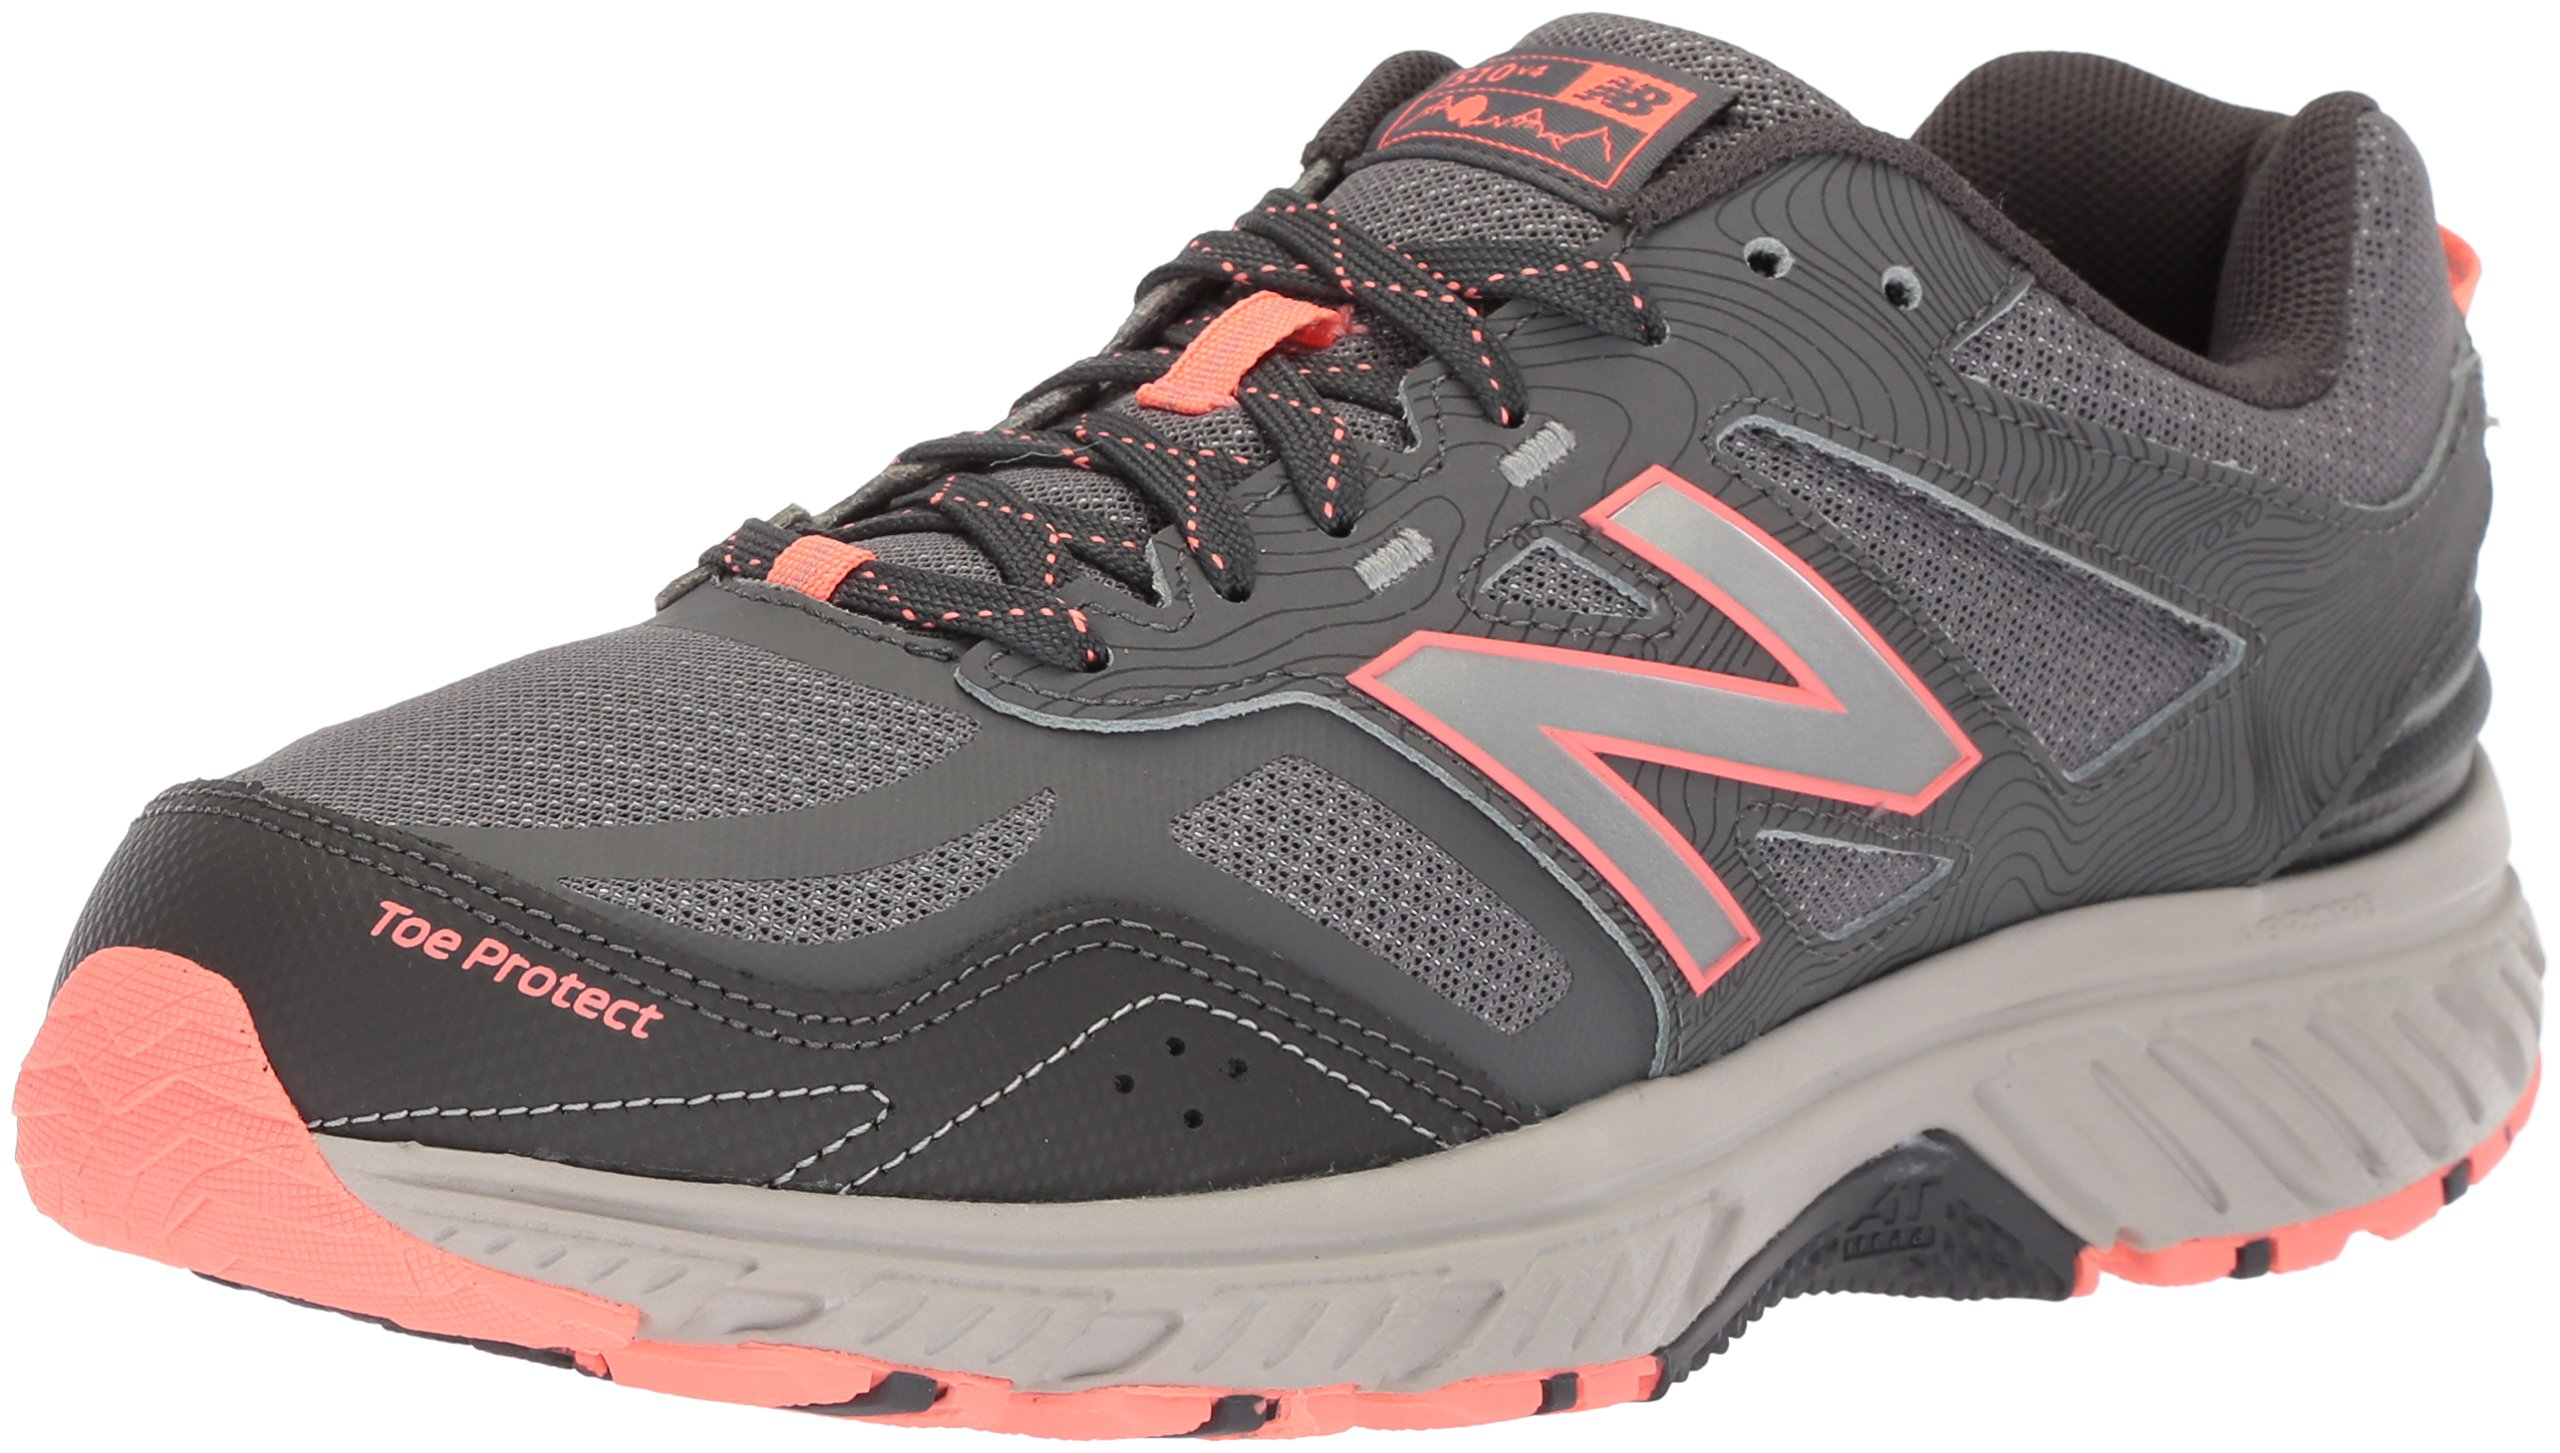 New Balance Women's 510v4 Cushioning Trail Running Shoe, Steel, 10 D US